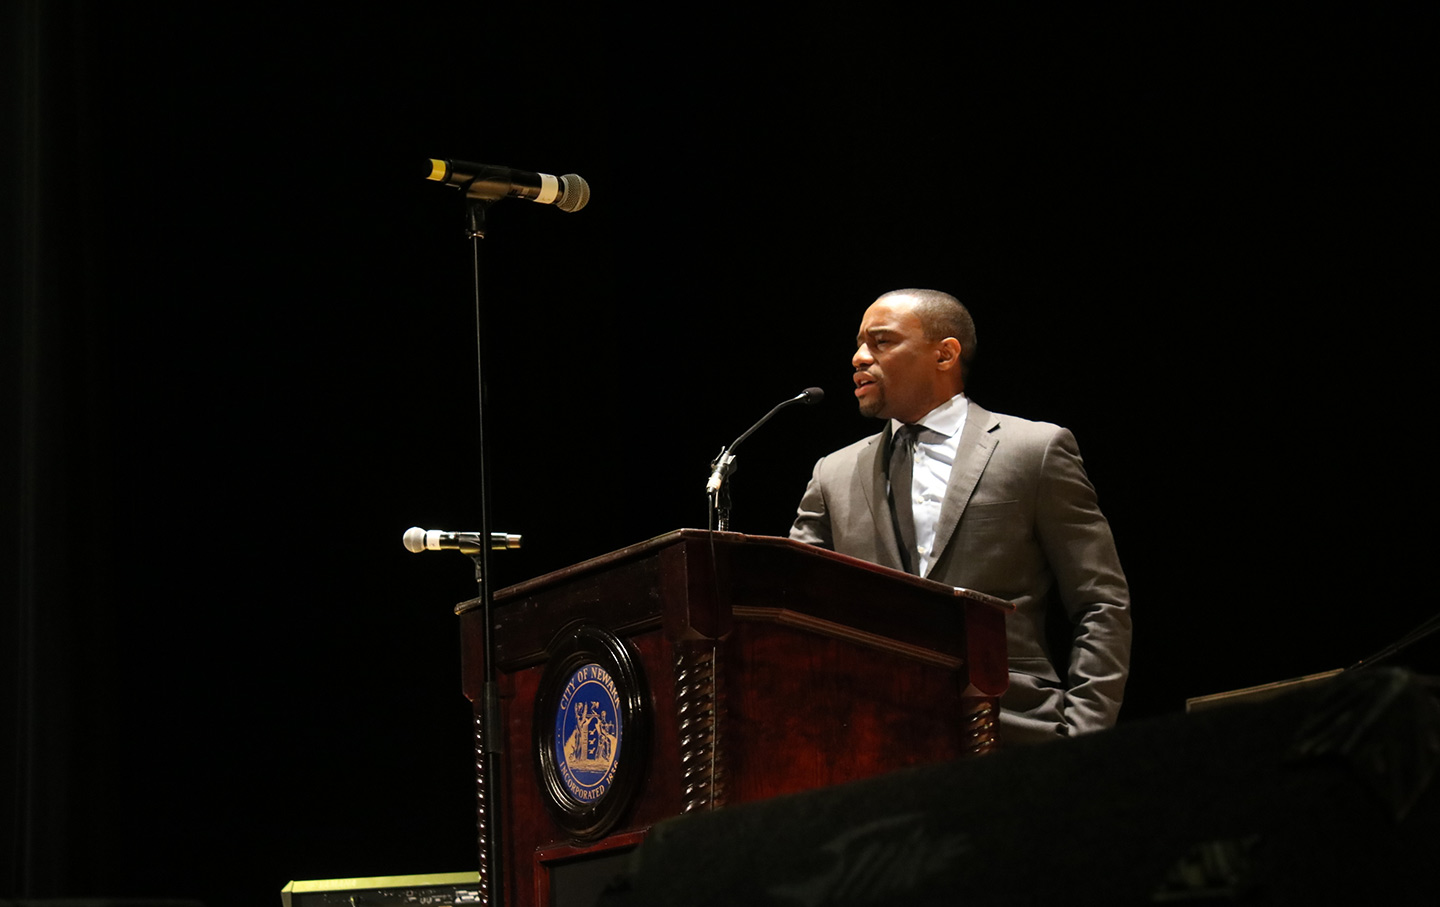 The Harsh and Unjust Punishment of Marc Lamont Hill